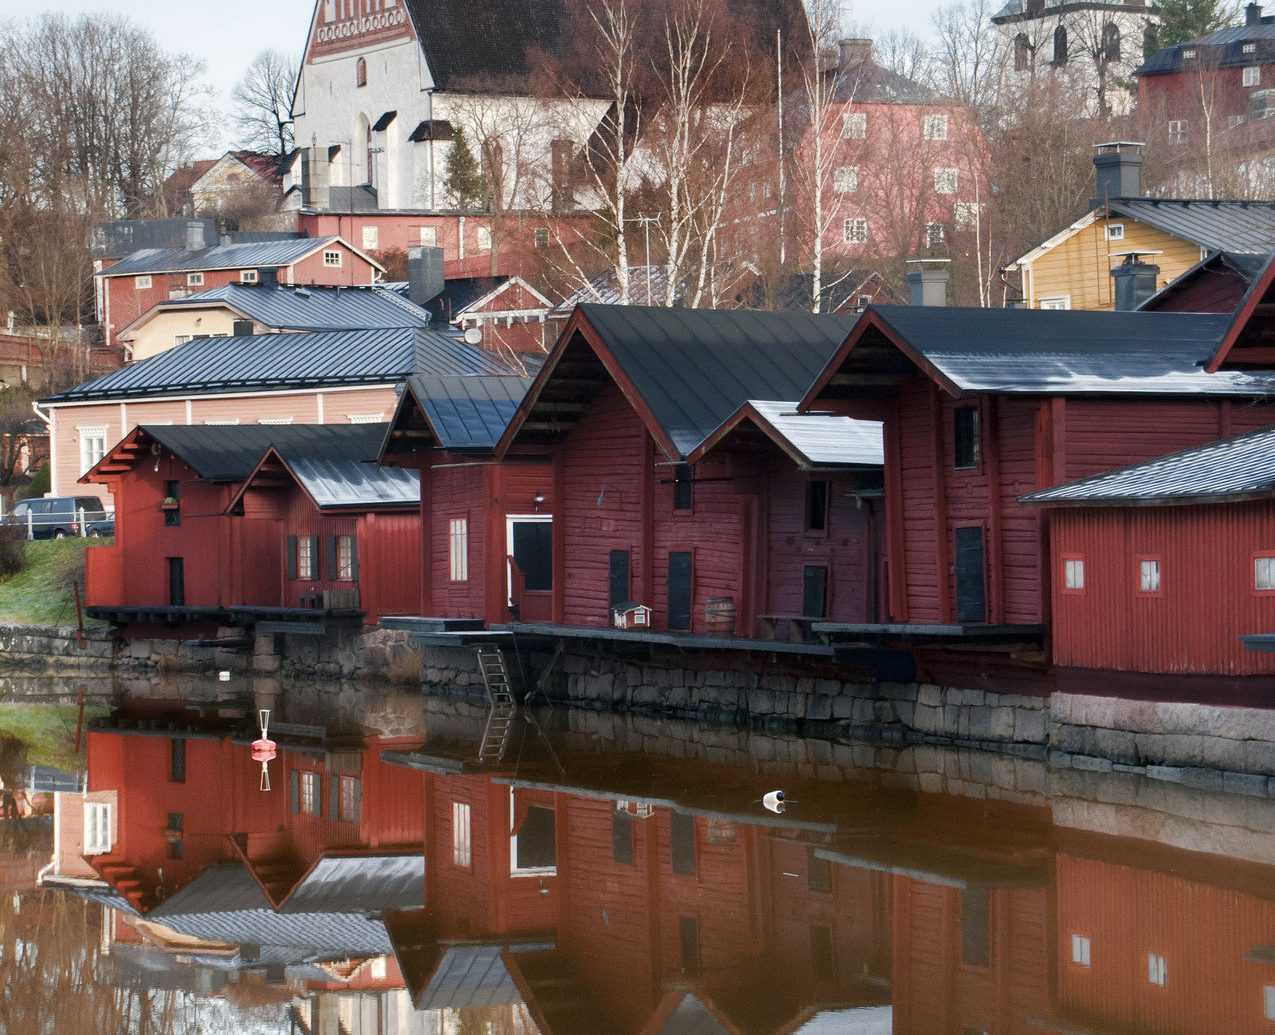 Finland Trip Ideas building outdoor reflection house Winter water River Town season snow waterway vehicle dock boathouse